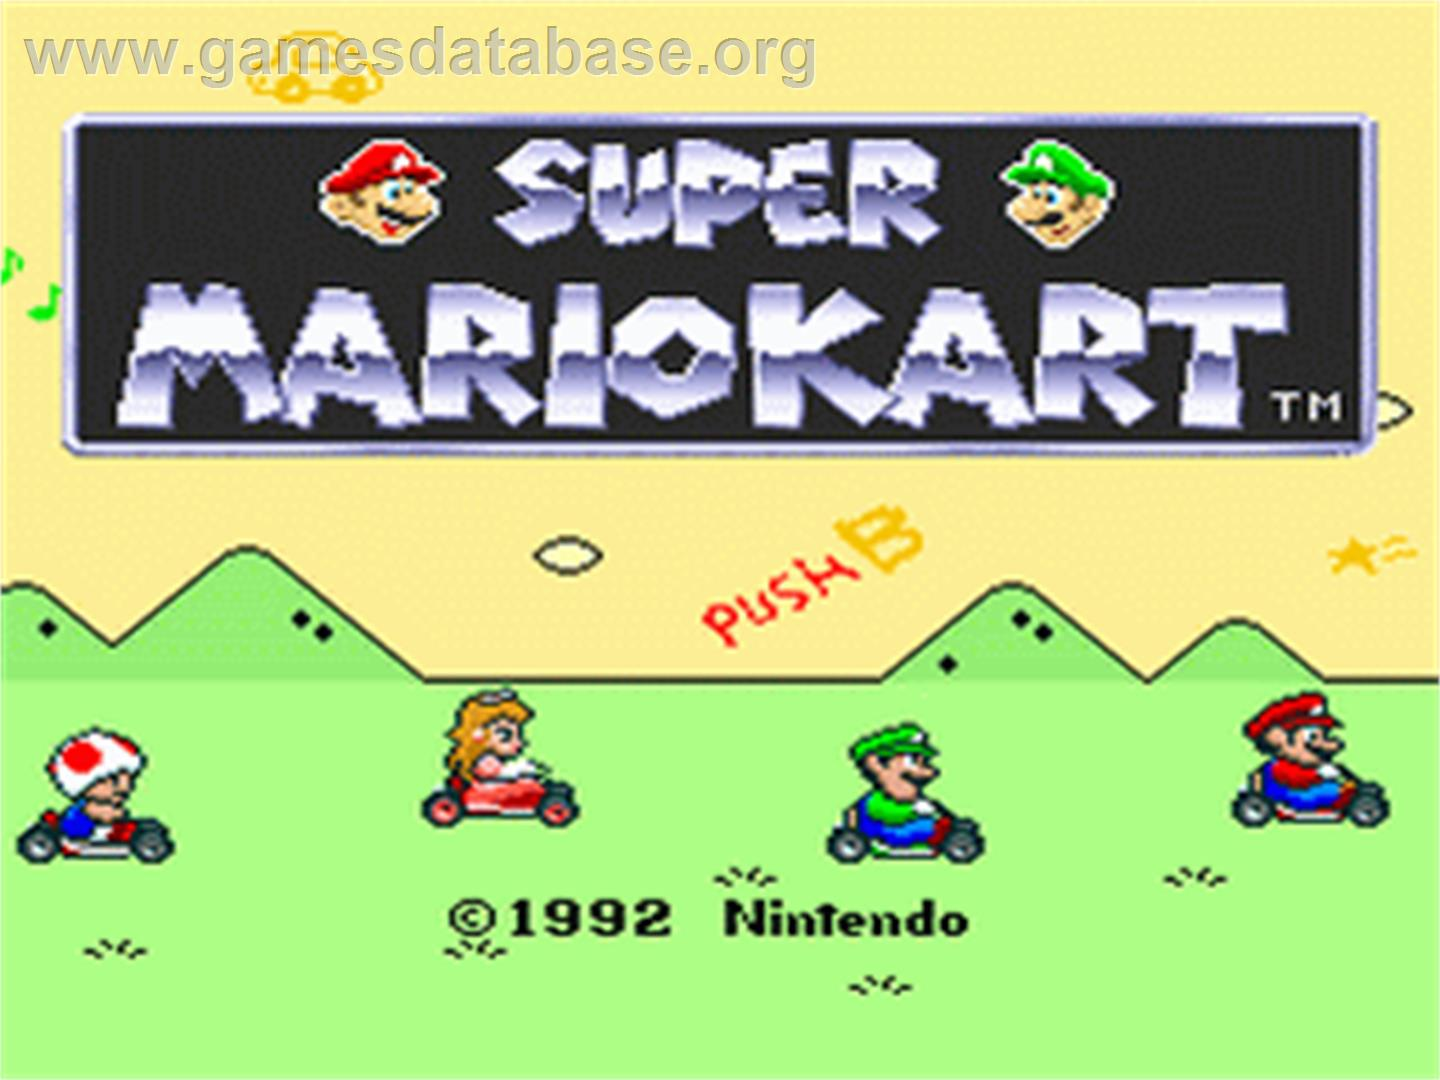 Super Mario Kart Nintendo Snes Games Database